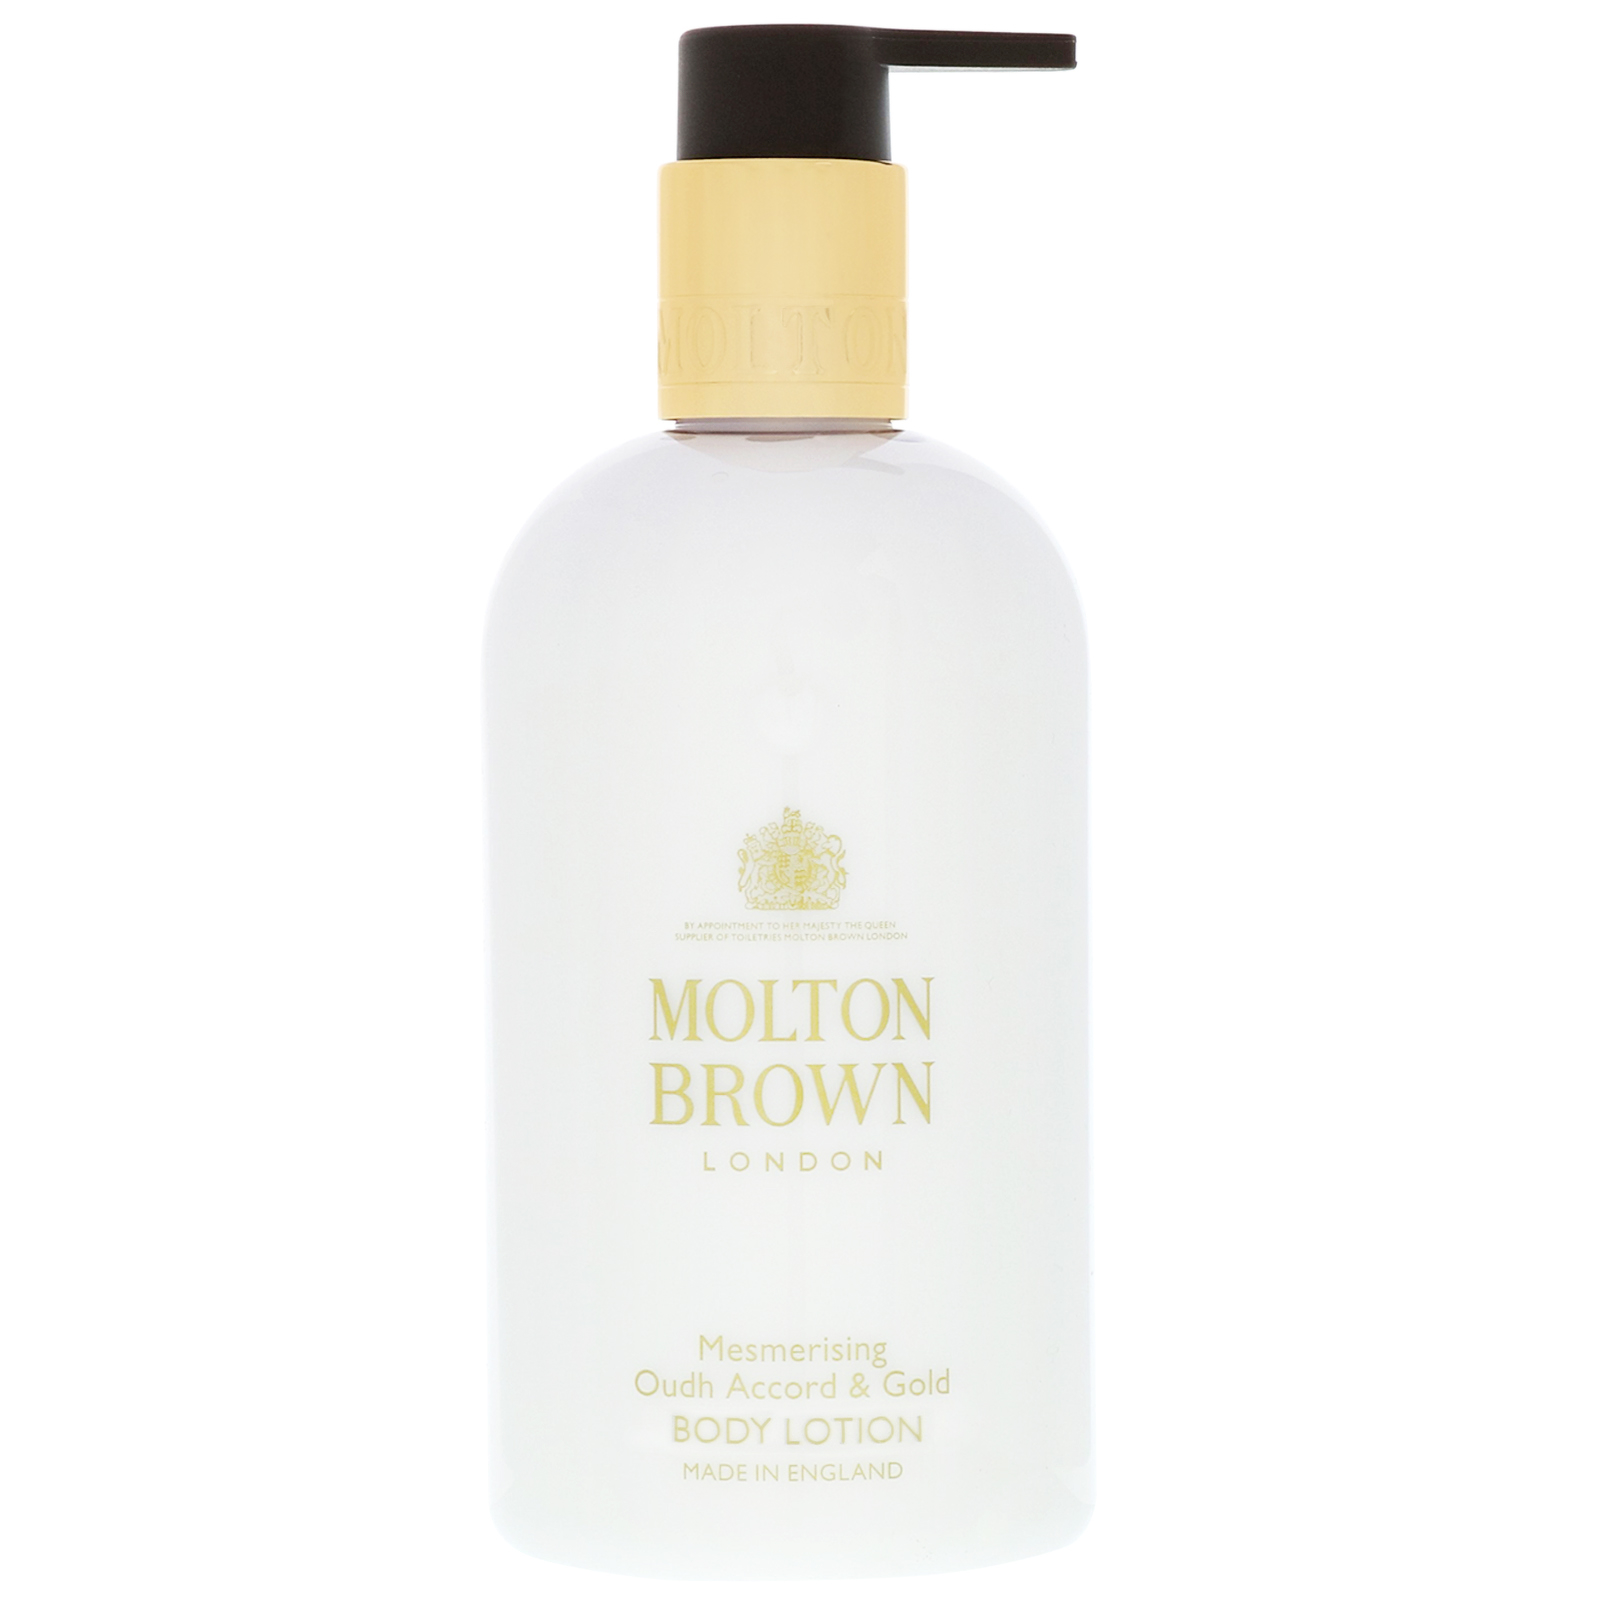 Molton Brown Mesmerising Oudh Accord & Gold Body Lotion 300ml